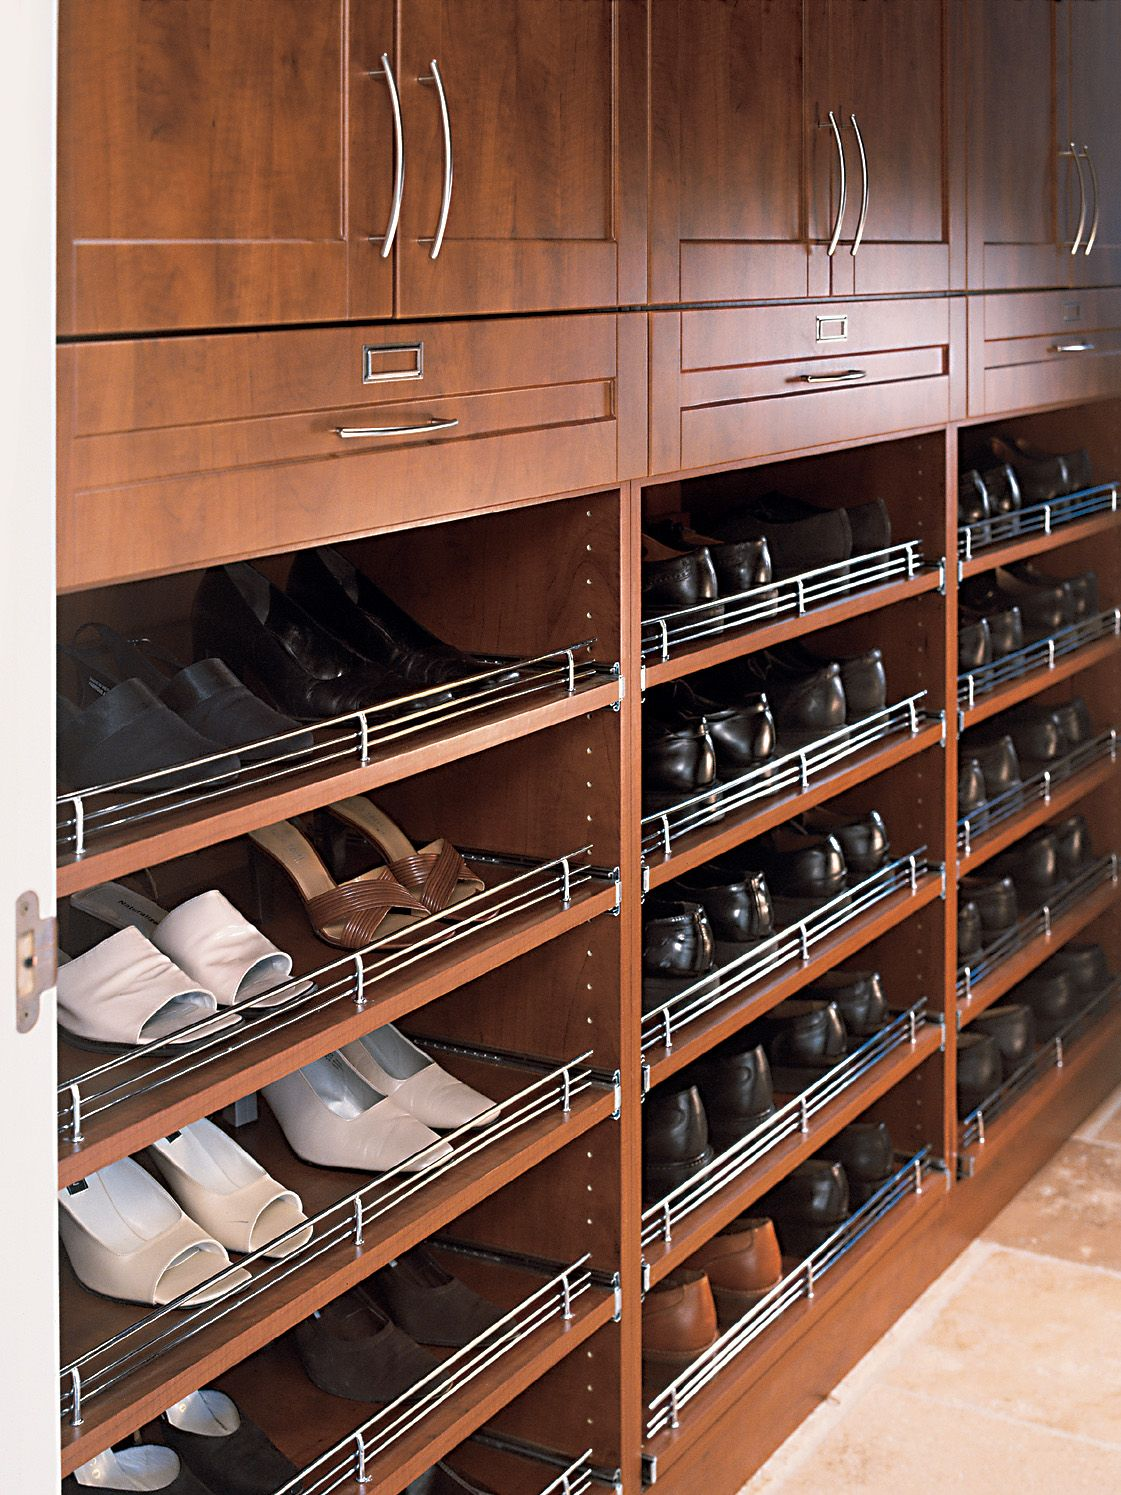 Shoe Racks With A Metal Ledge To Prevent Them From Sliding Out